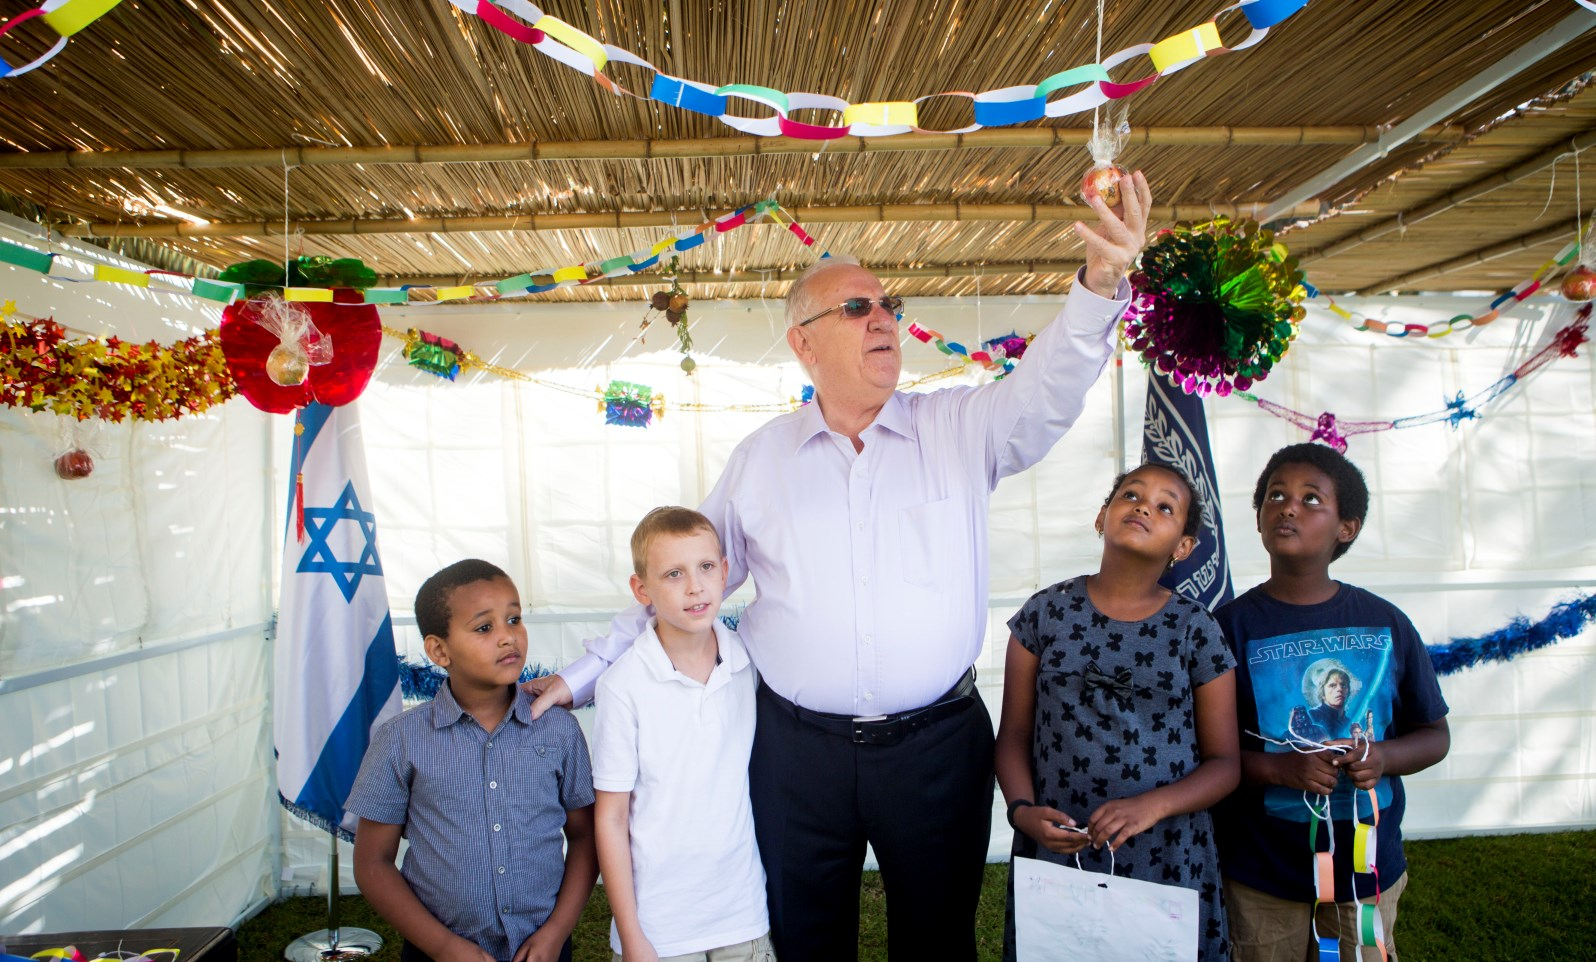 Every year, children are invited to help the Israeli president decorate the official sukkah in Jerusalem. Photo by Miriam Alster/FLASH90